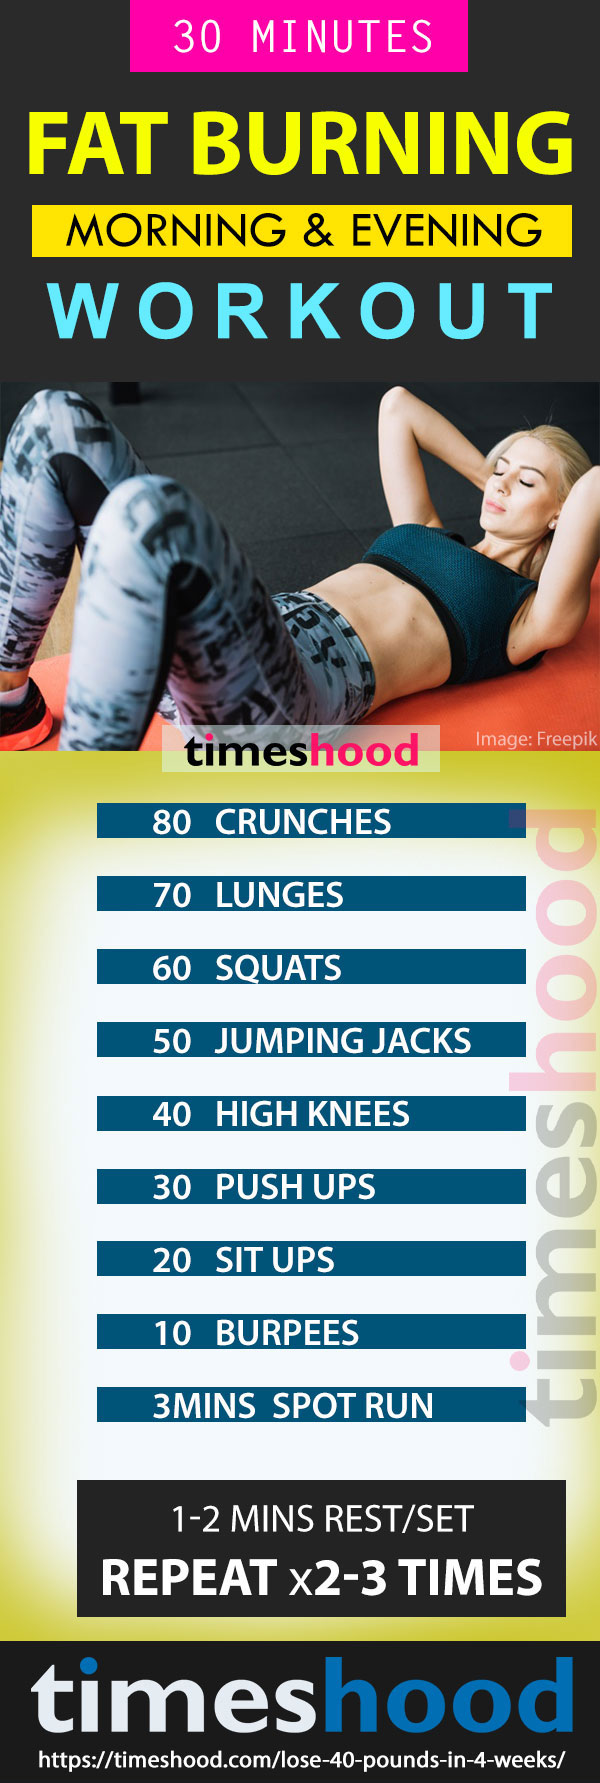 Fat Burning Workout: Morning Workout Plan for Weight loss. Best fat burning exercise for fast weight loss. HIIT Workout challenge. Lose up to 40 pounds in 4 weeks complete 24 hours weight loss guide to follow. Fastest way to lose weight in 4 weeks. 4 Week flat belly challenge to lose up to 40 pounds visit timeshood.com